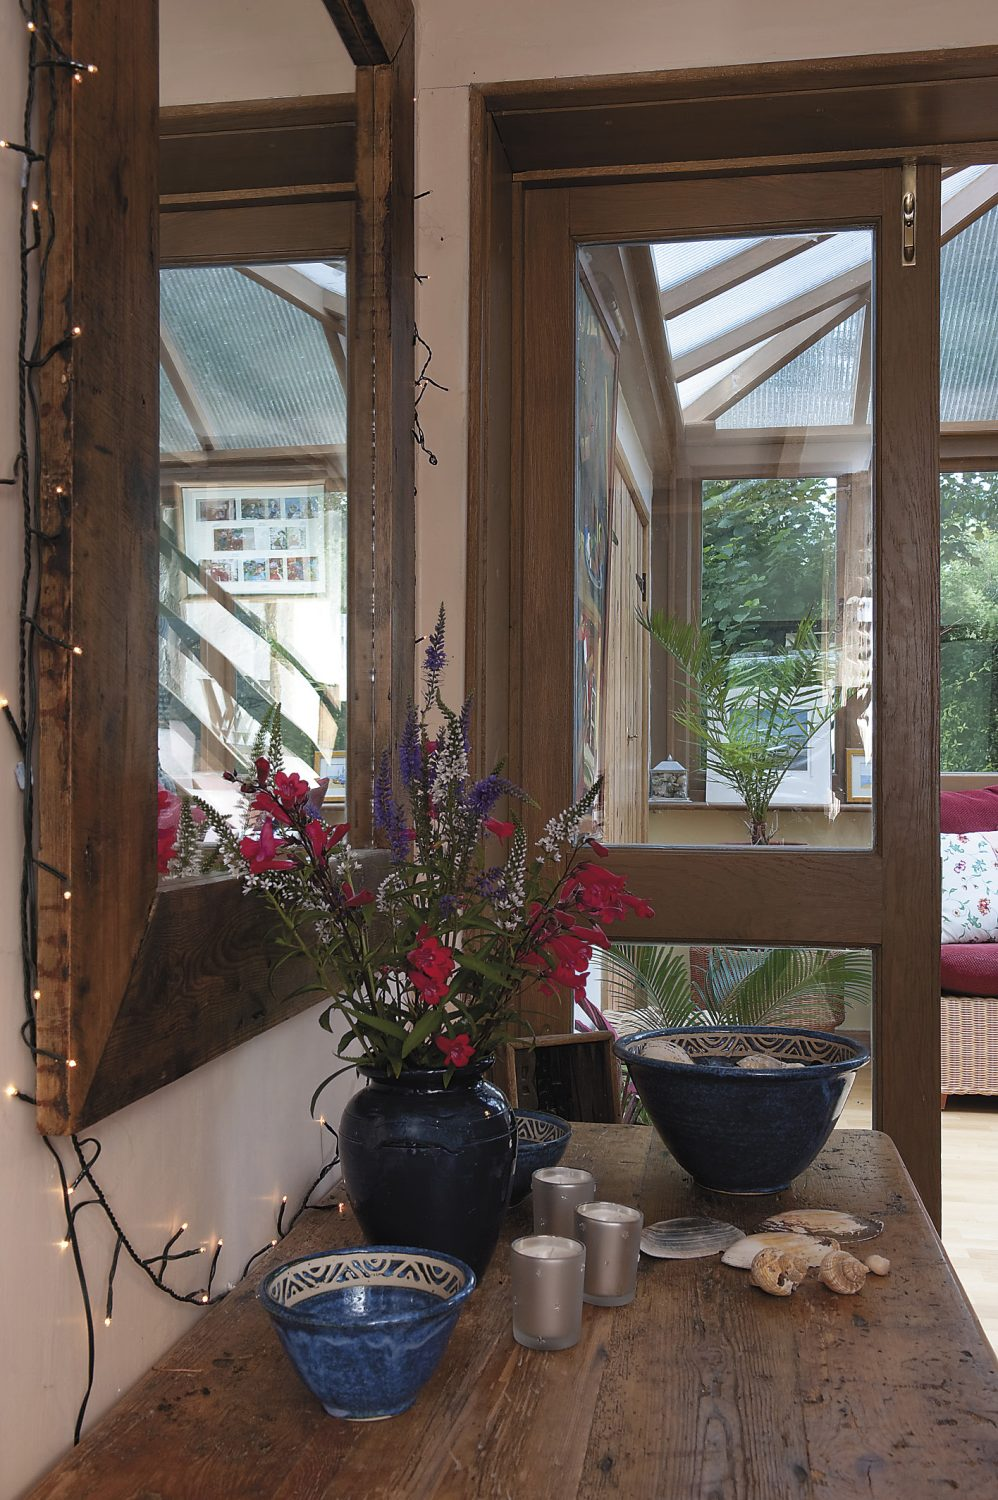 the Wildings added the delightful conservatory which is Christine's favourite summer spot, where she will sit with a cup of tea, a good book and one of the cats!